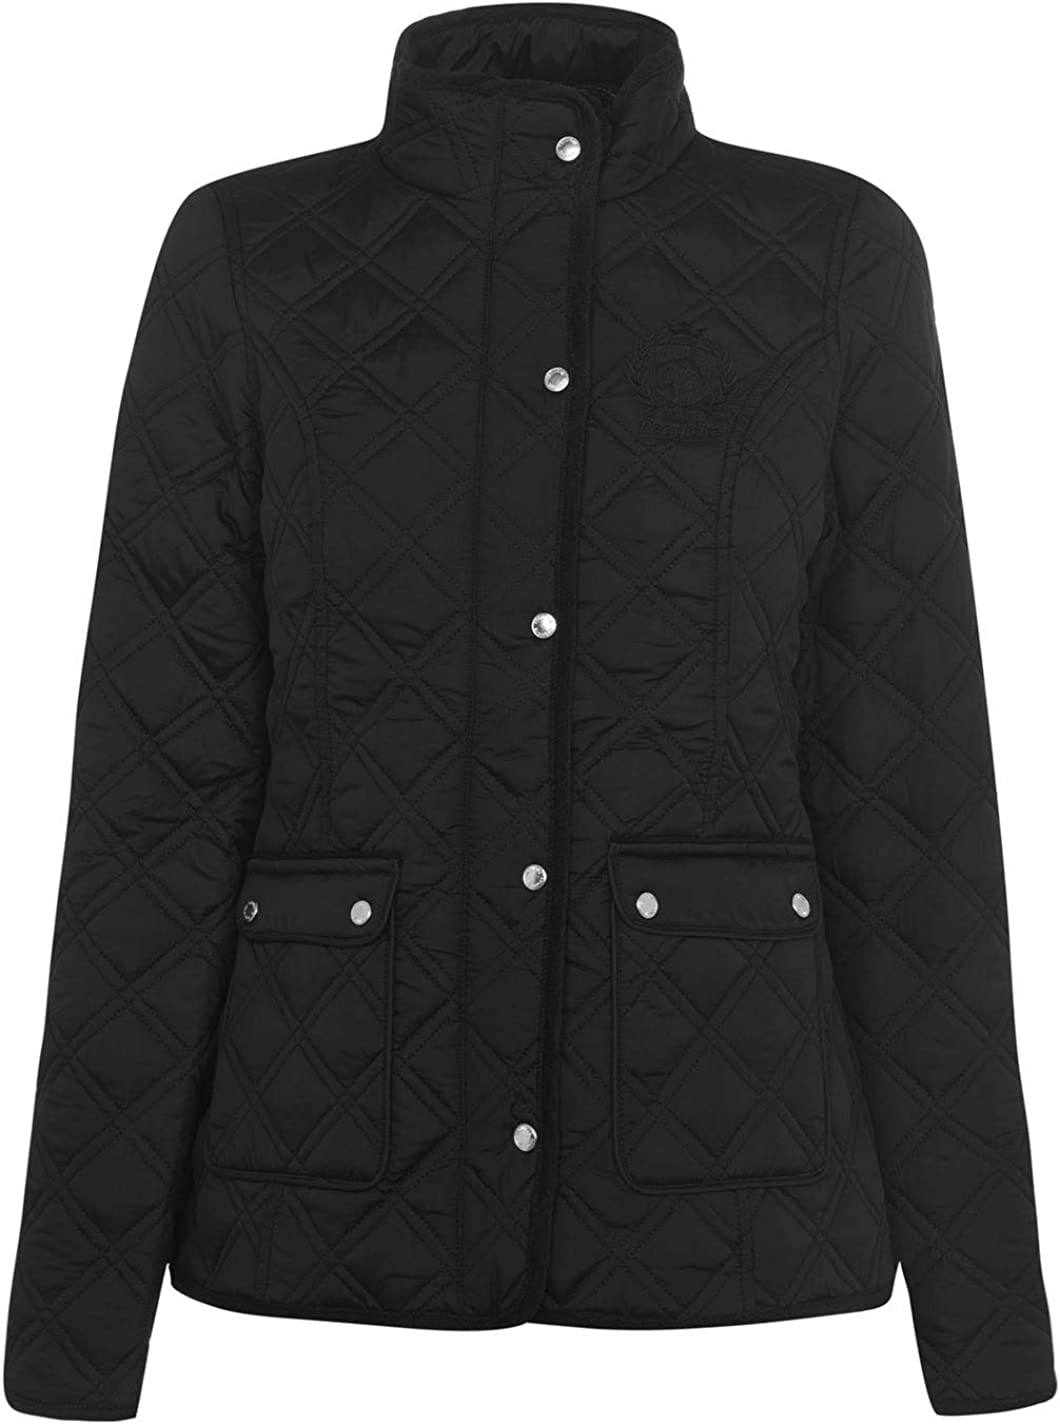 Requisite Womens Quilted Zipped and Buttons Front Pockets Jacket Ladies